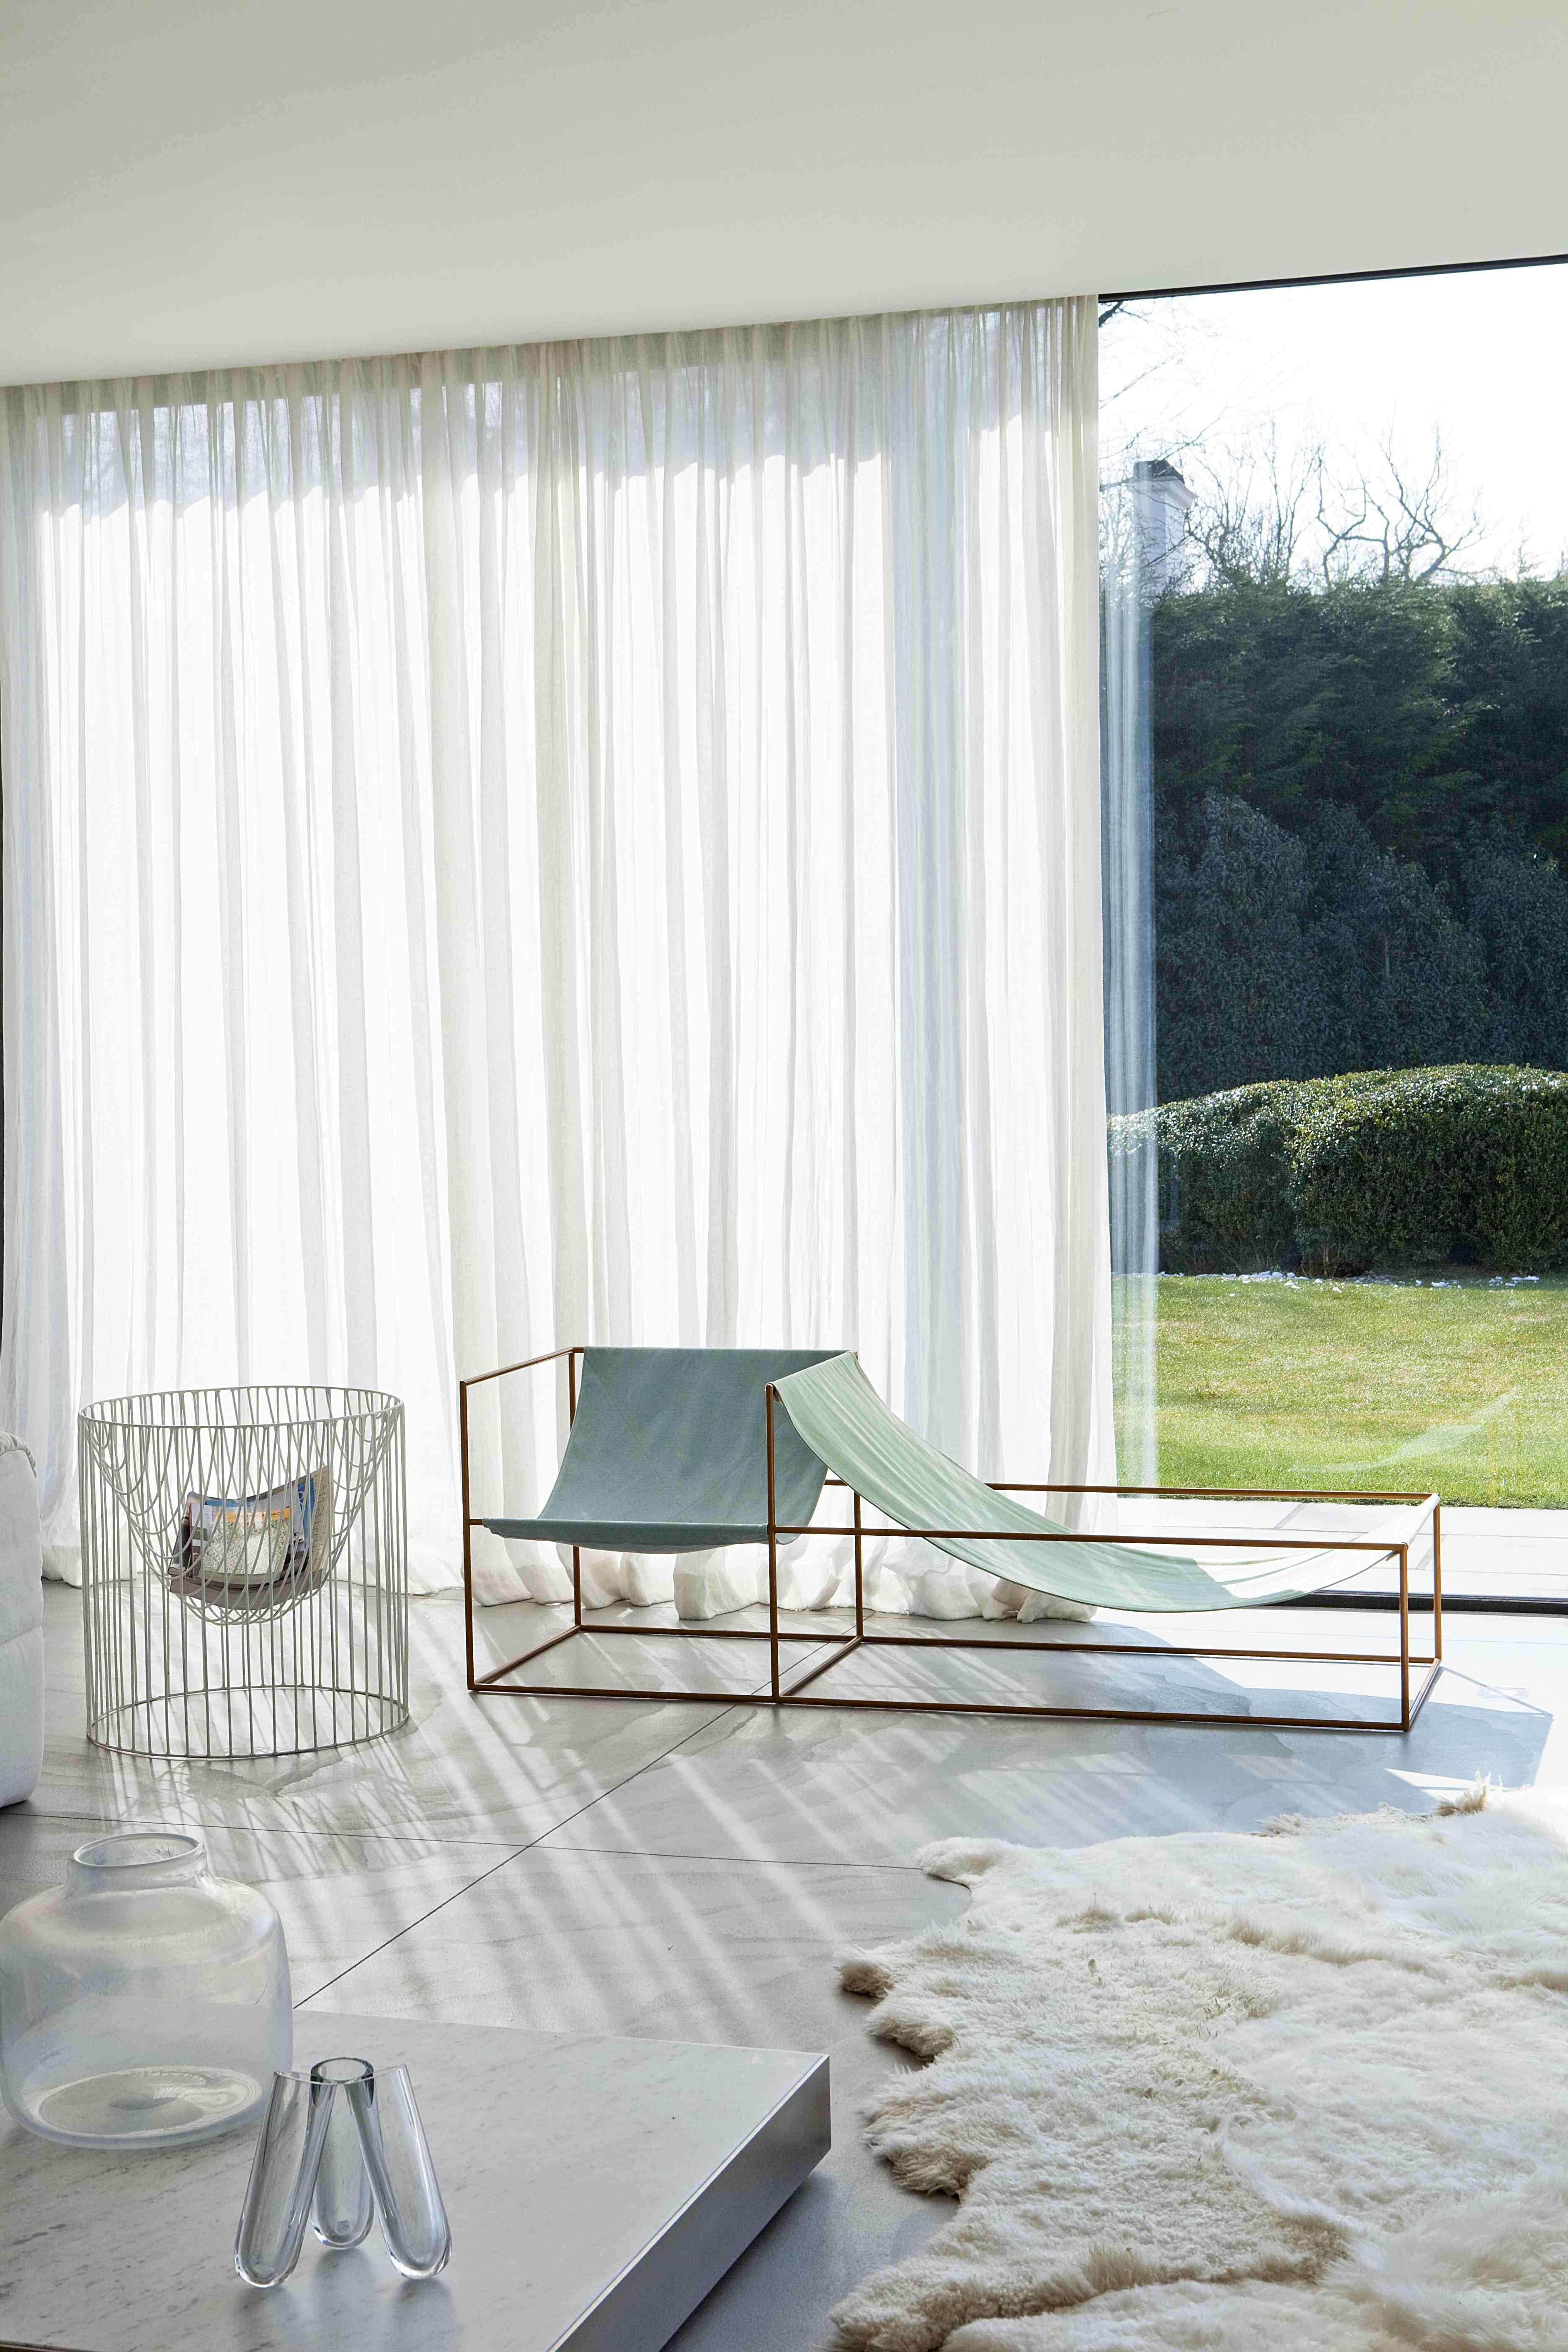 gordijnen p white sheer draperies seat by fien van muller and hannes van